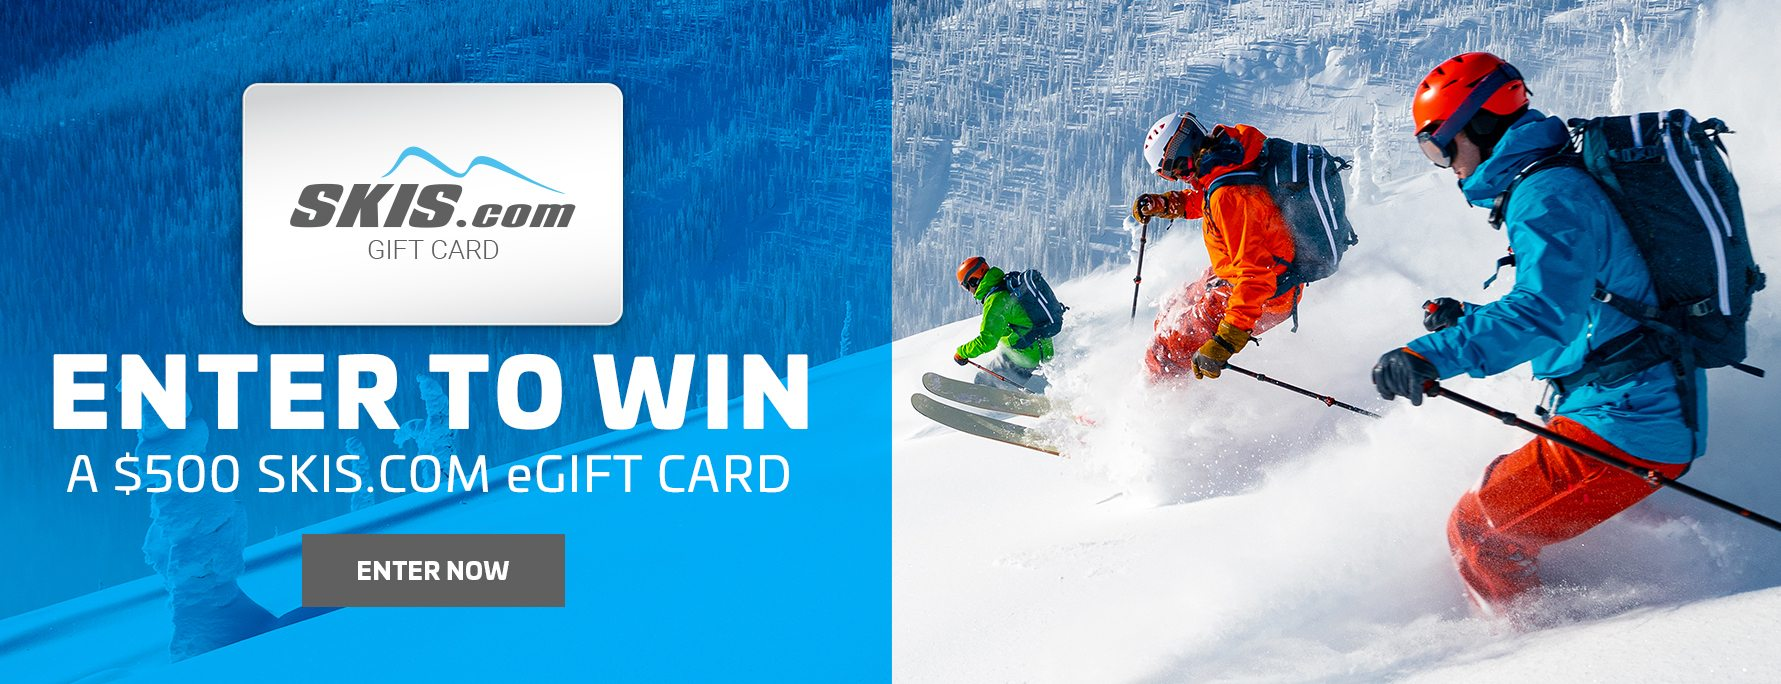 ENTER TO WIN $500